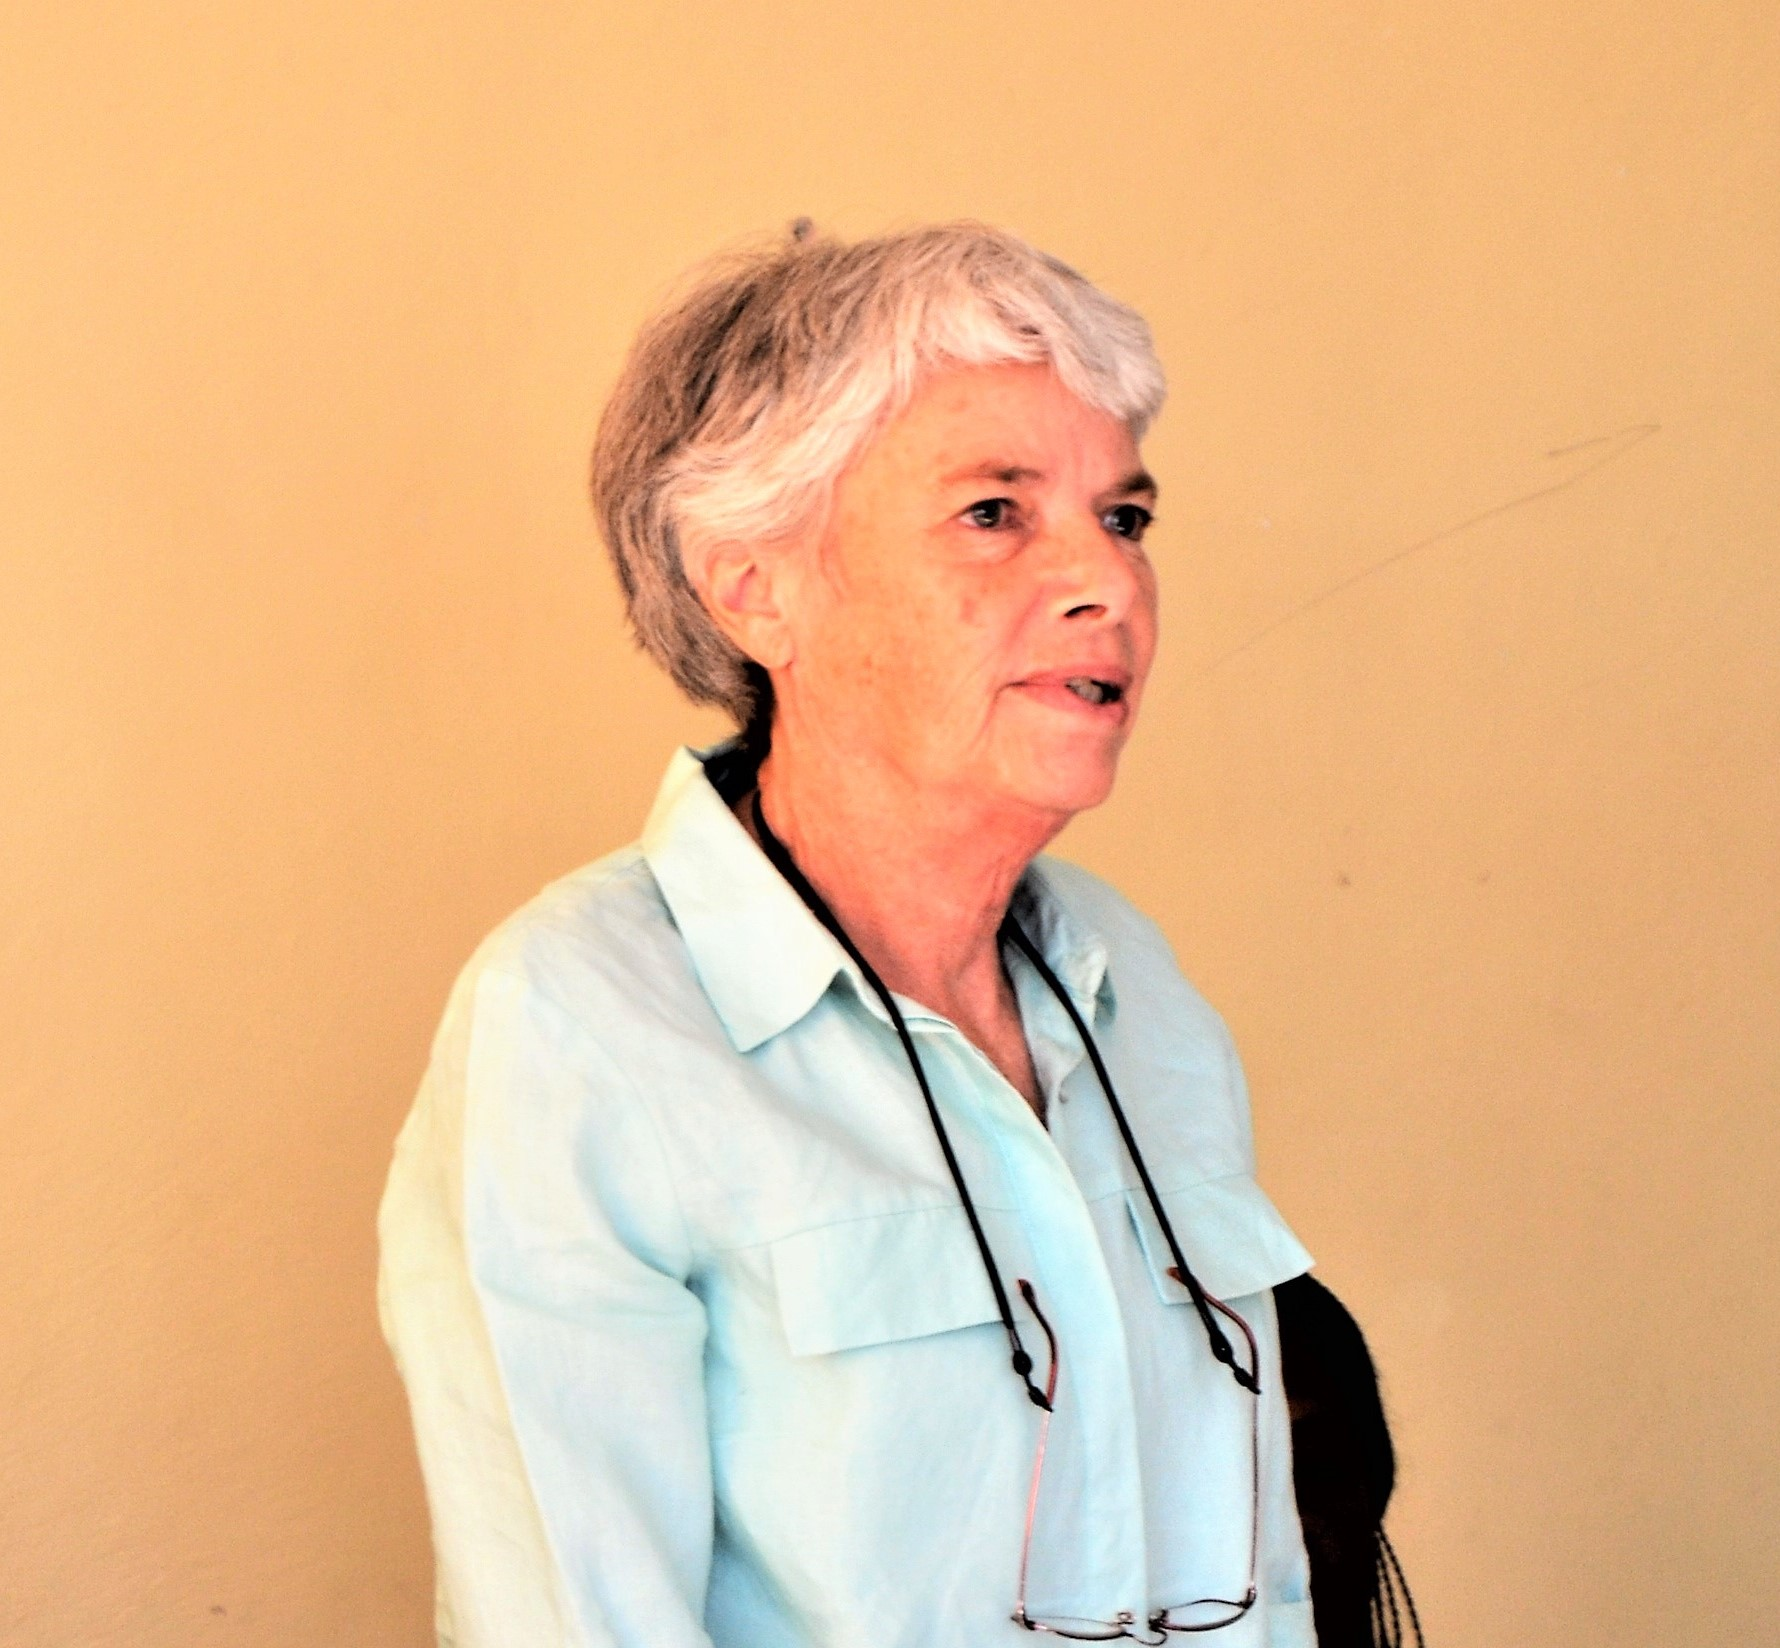 Founder and Director - Susan Brown started the Combretum Educational Trust in 2001 and the Combretum Trust School in 2004. She has over 35 years of experience in education.